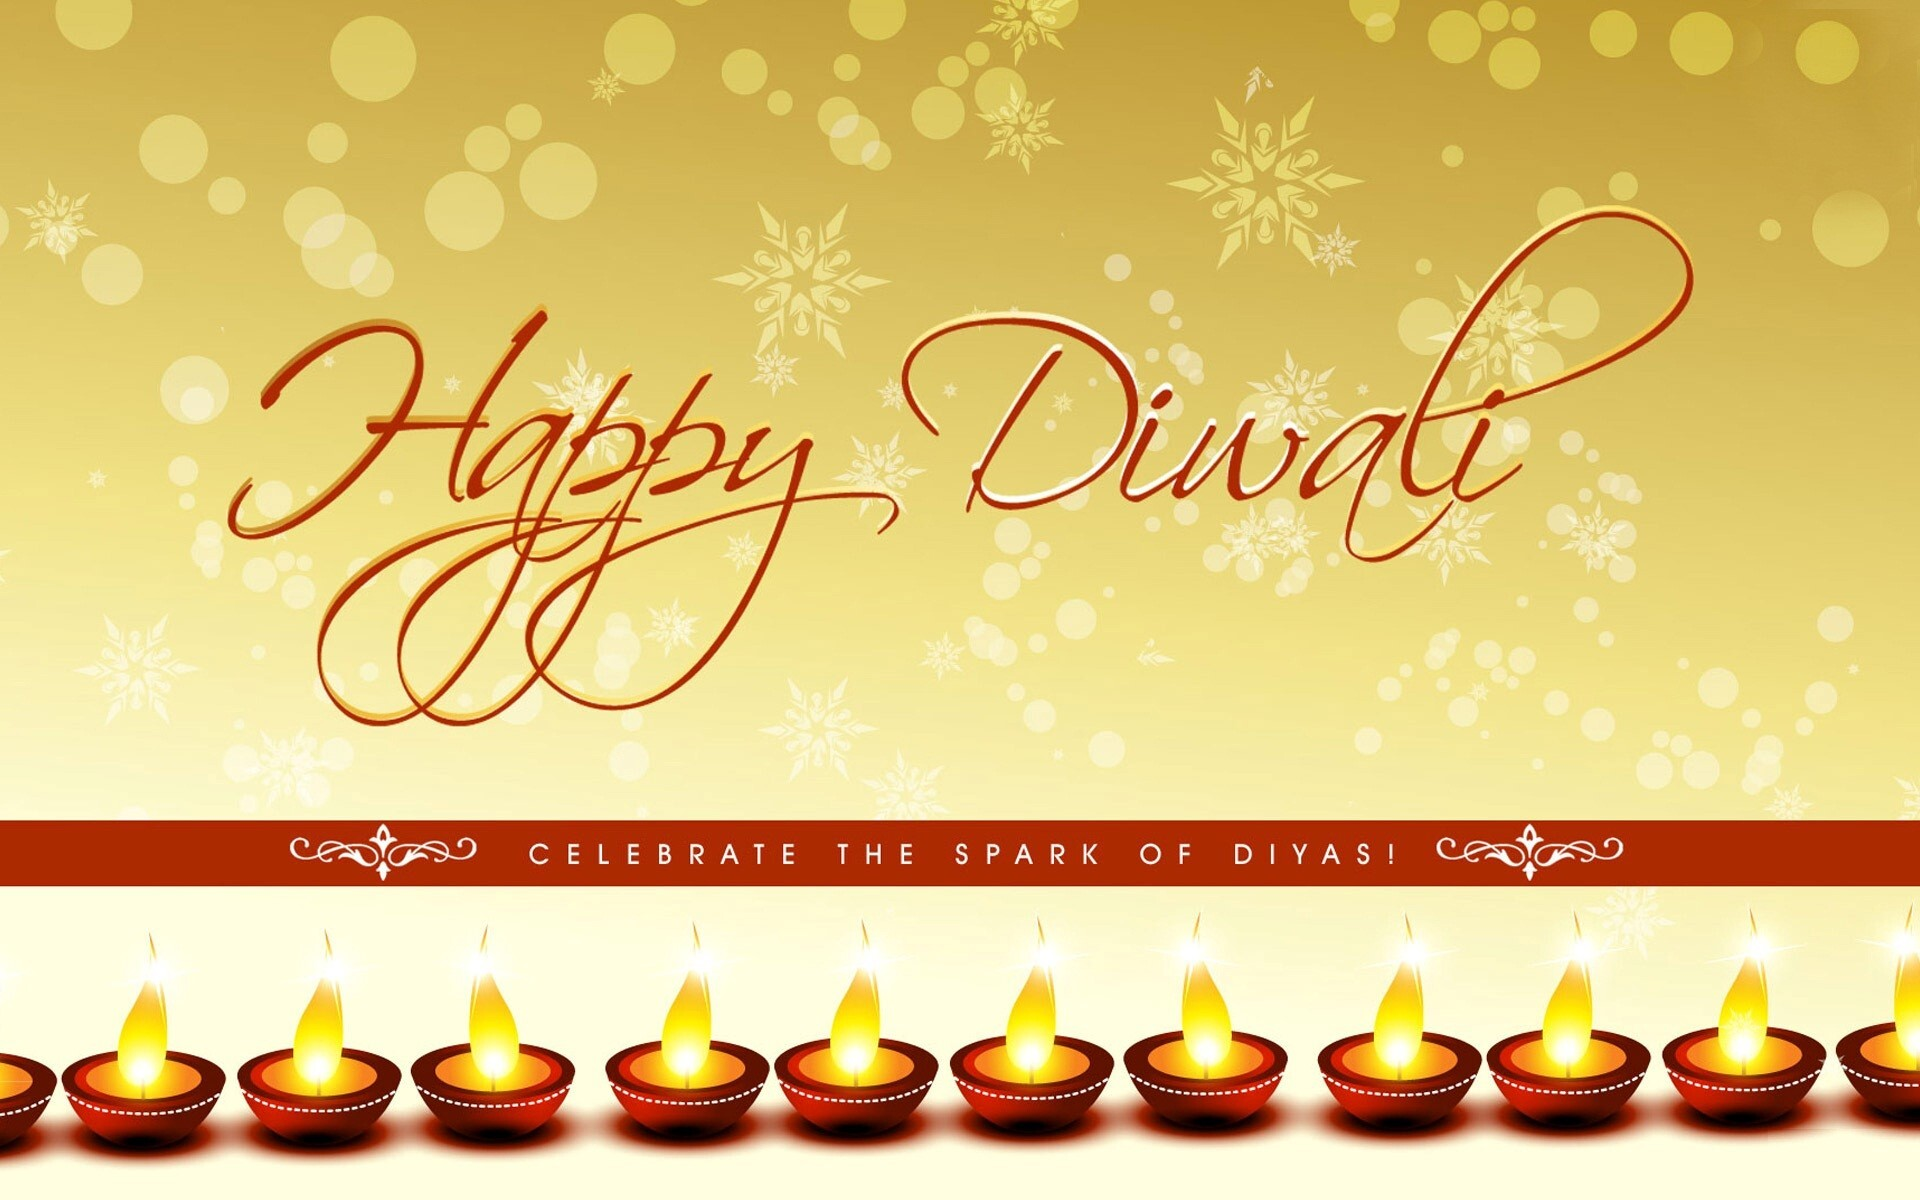 Happy diwali celebration greetings card wallpapers hd wallpapers m4hsunfo